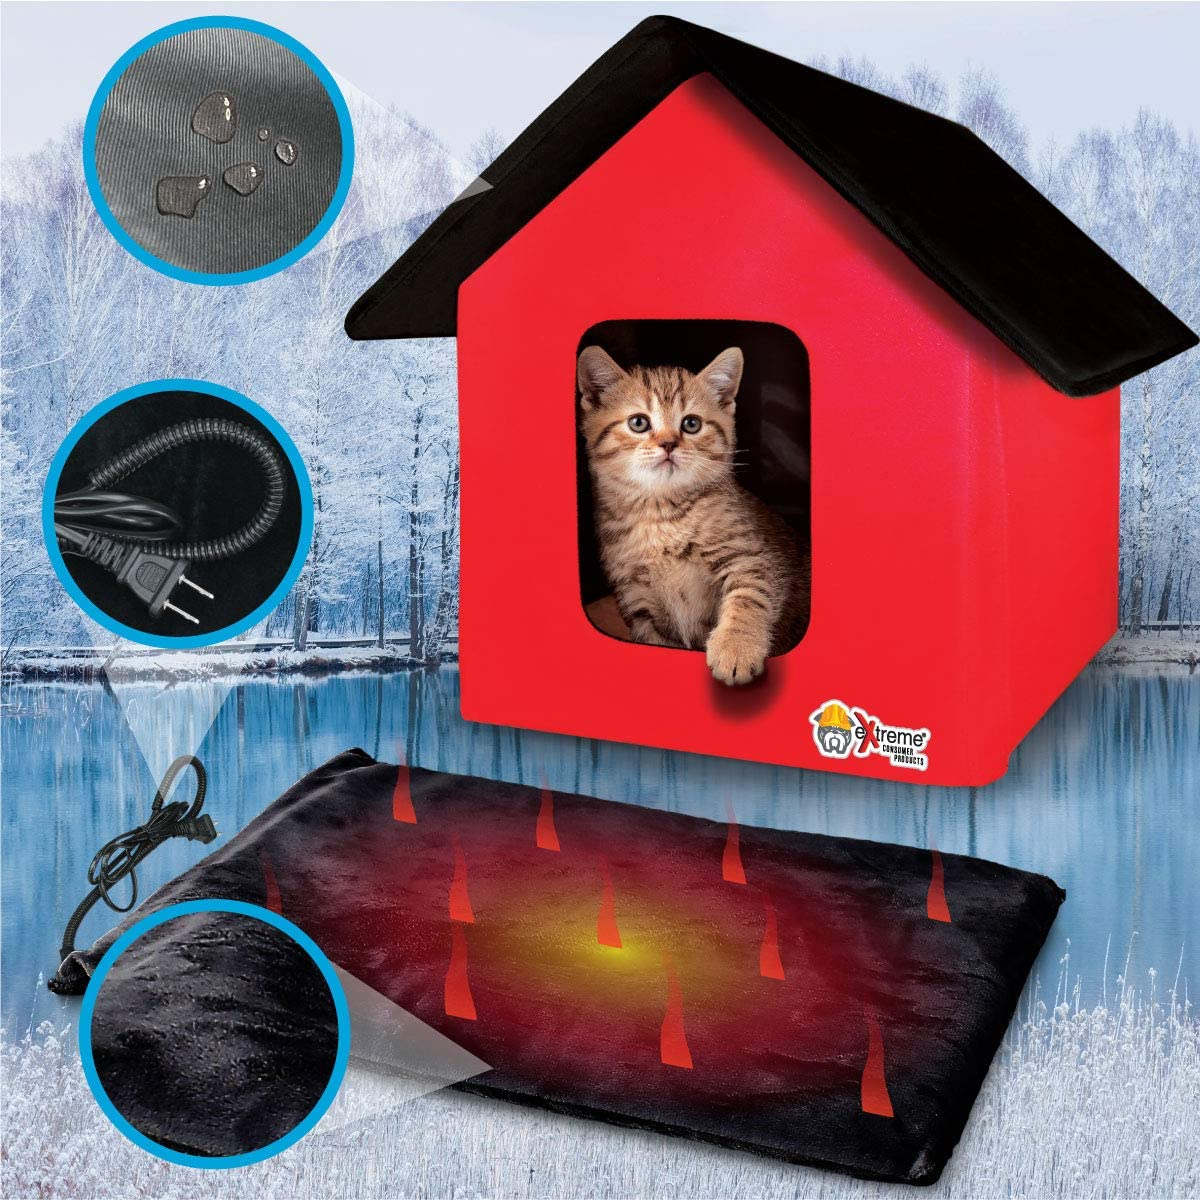 Beds Furniture An Extra Sturdy Luxury Covered Indoor Cat Bed Condo Pet House Shelter For Dogs And Other Pets Too Feline Ruff Indoor Cat House Cats